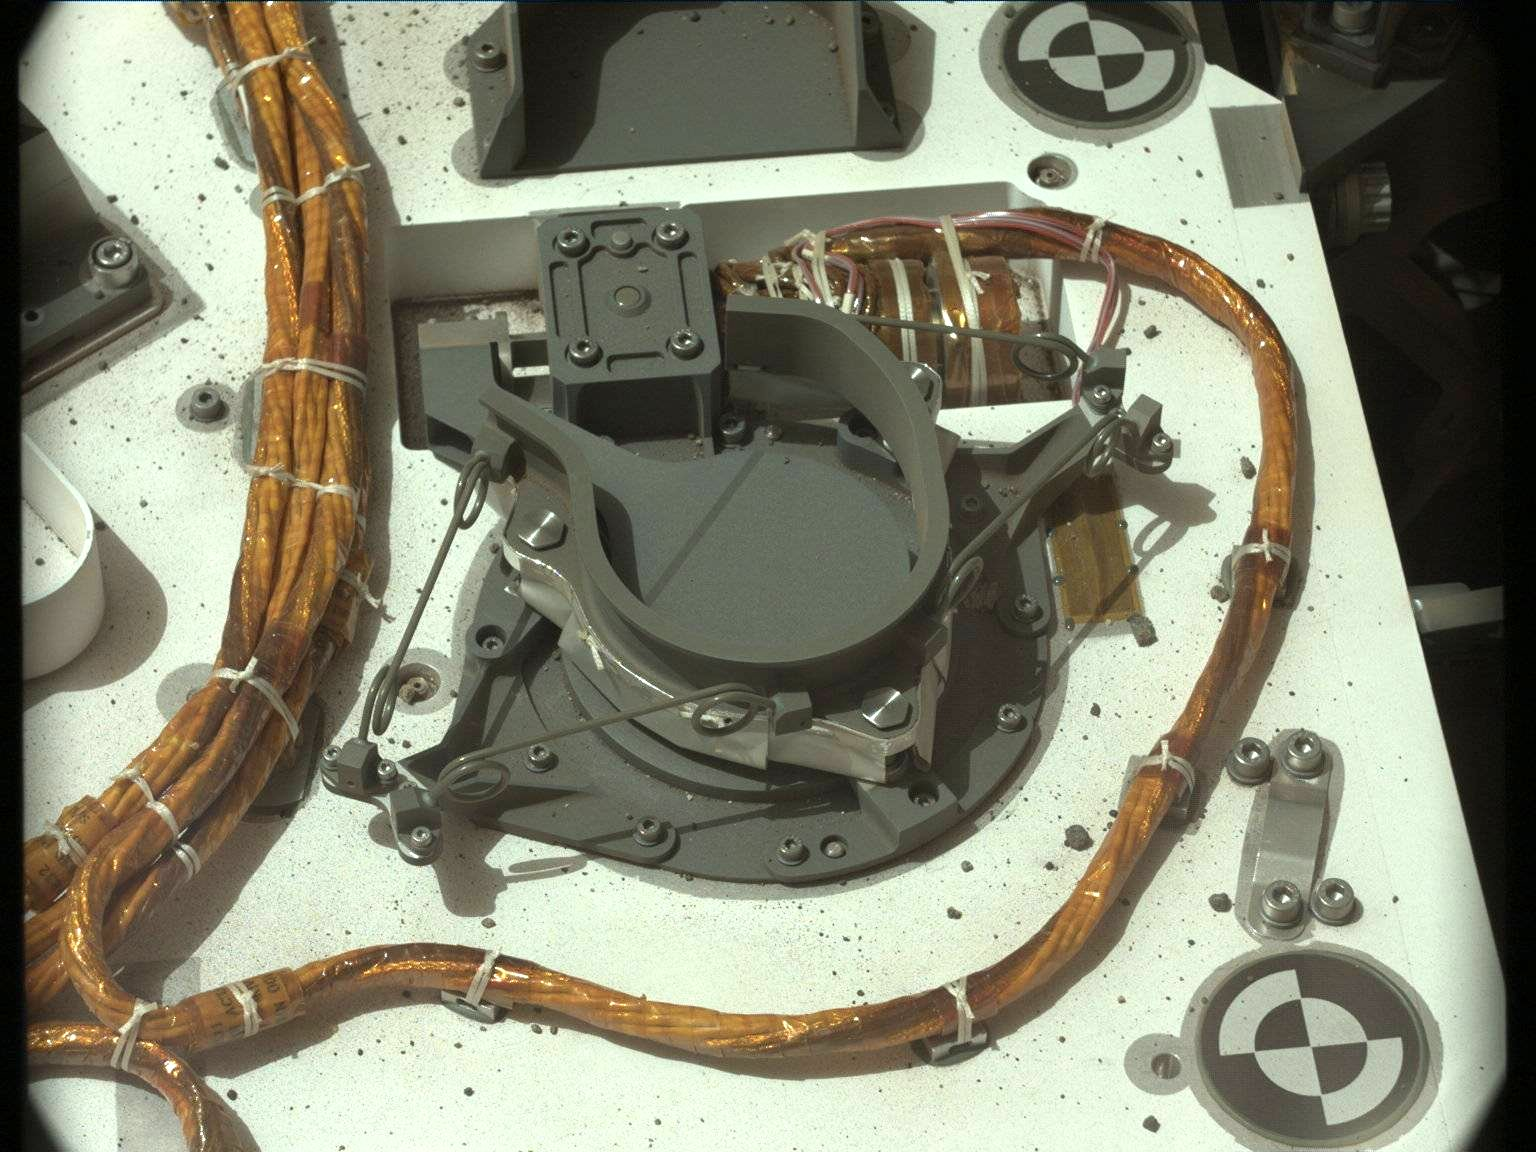 Nasa Wire Harness Wiring Library Workmanship Standards Cable Bundles On Curiosity